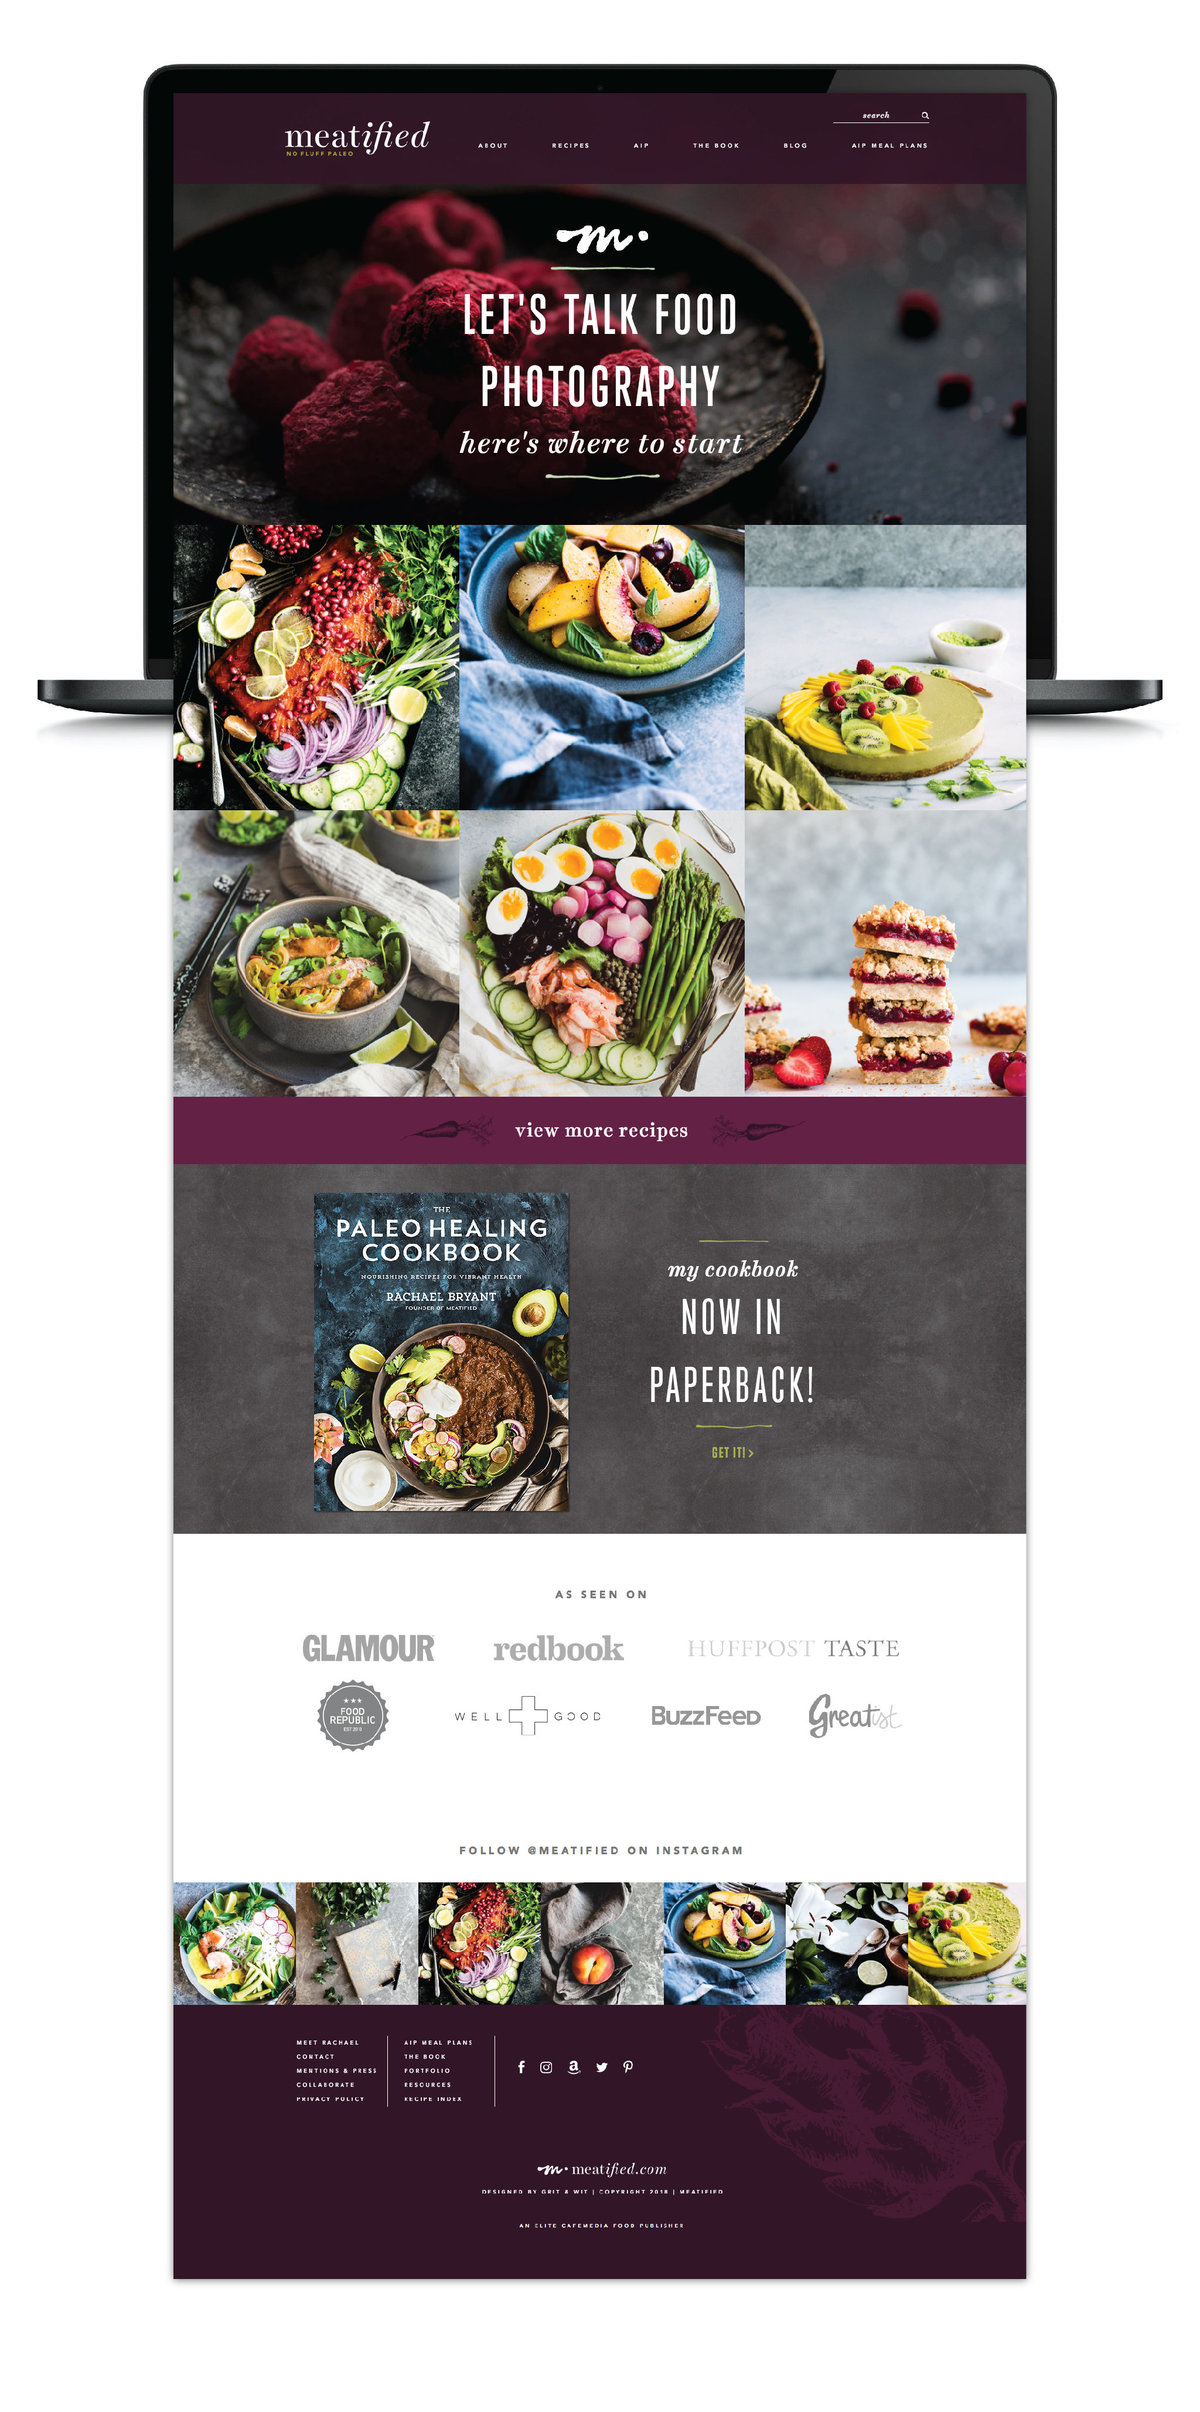 anthem-meatified-website